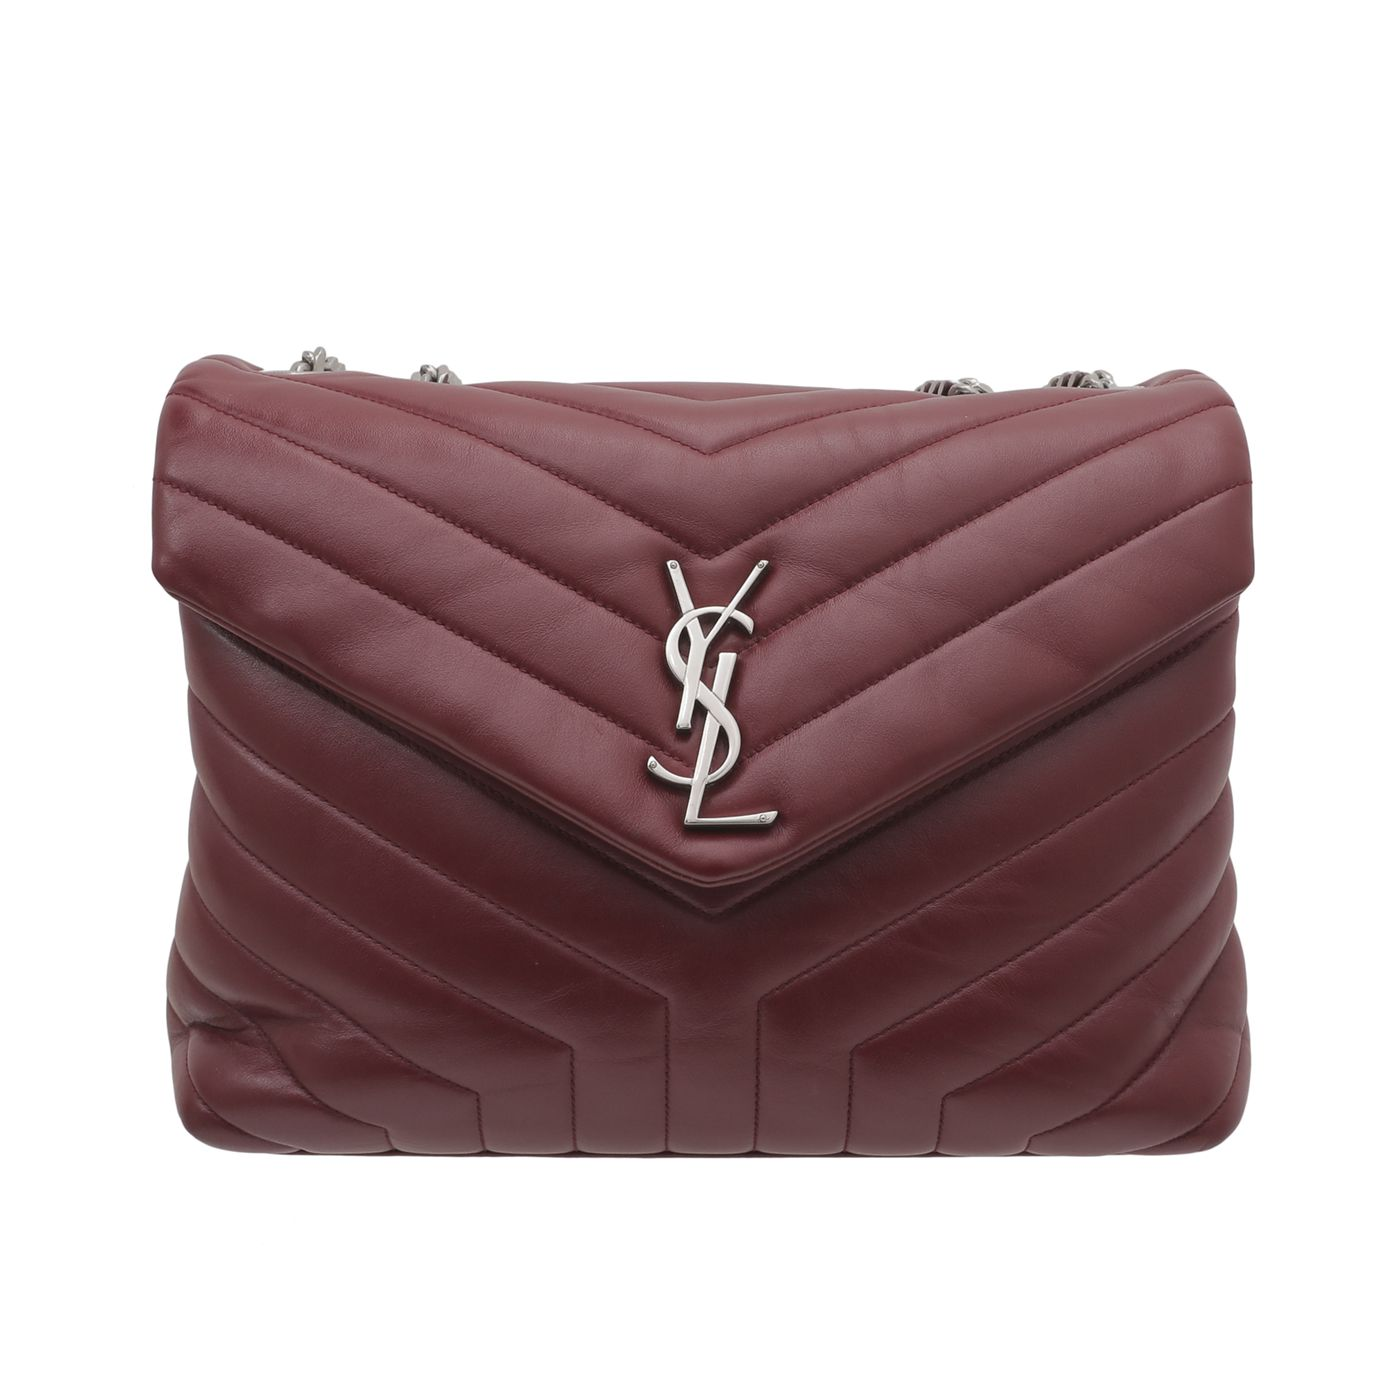 YSL Maroon Loulou Shoulder Bag